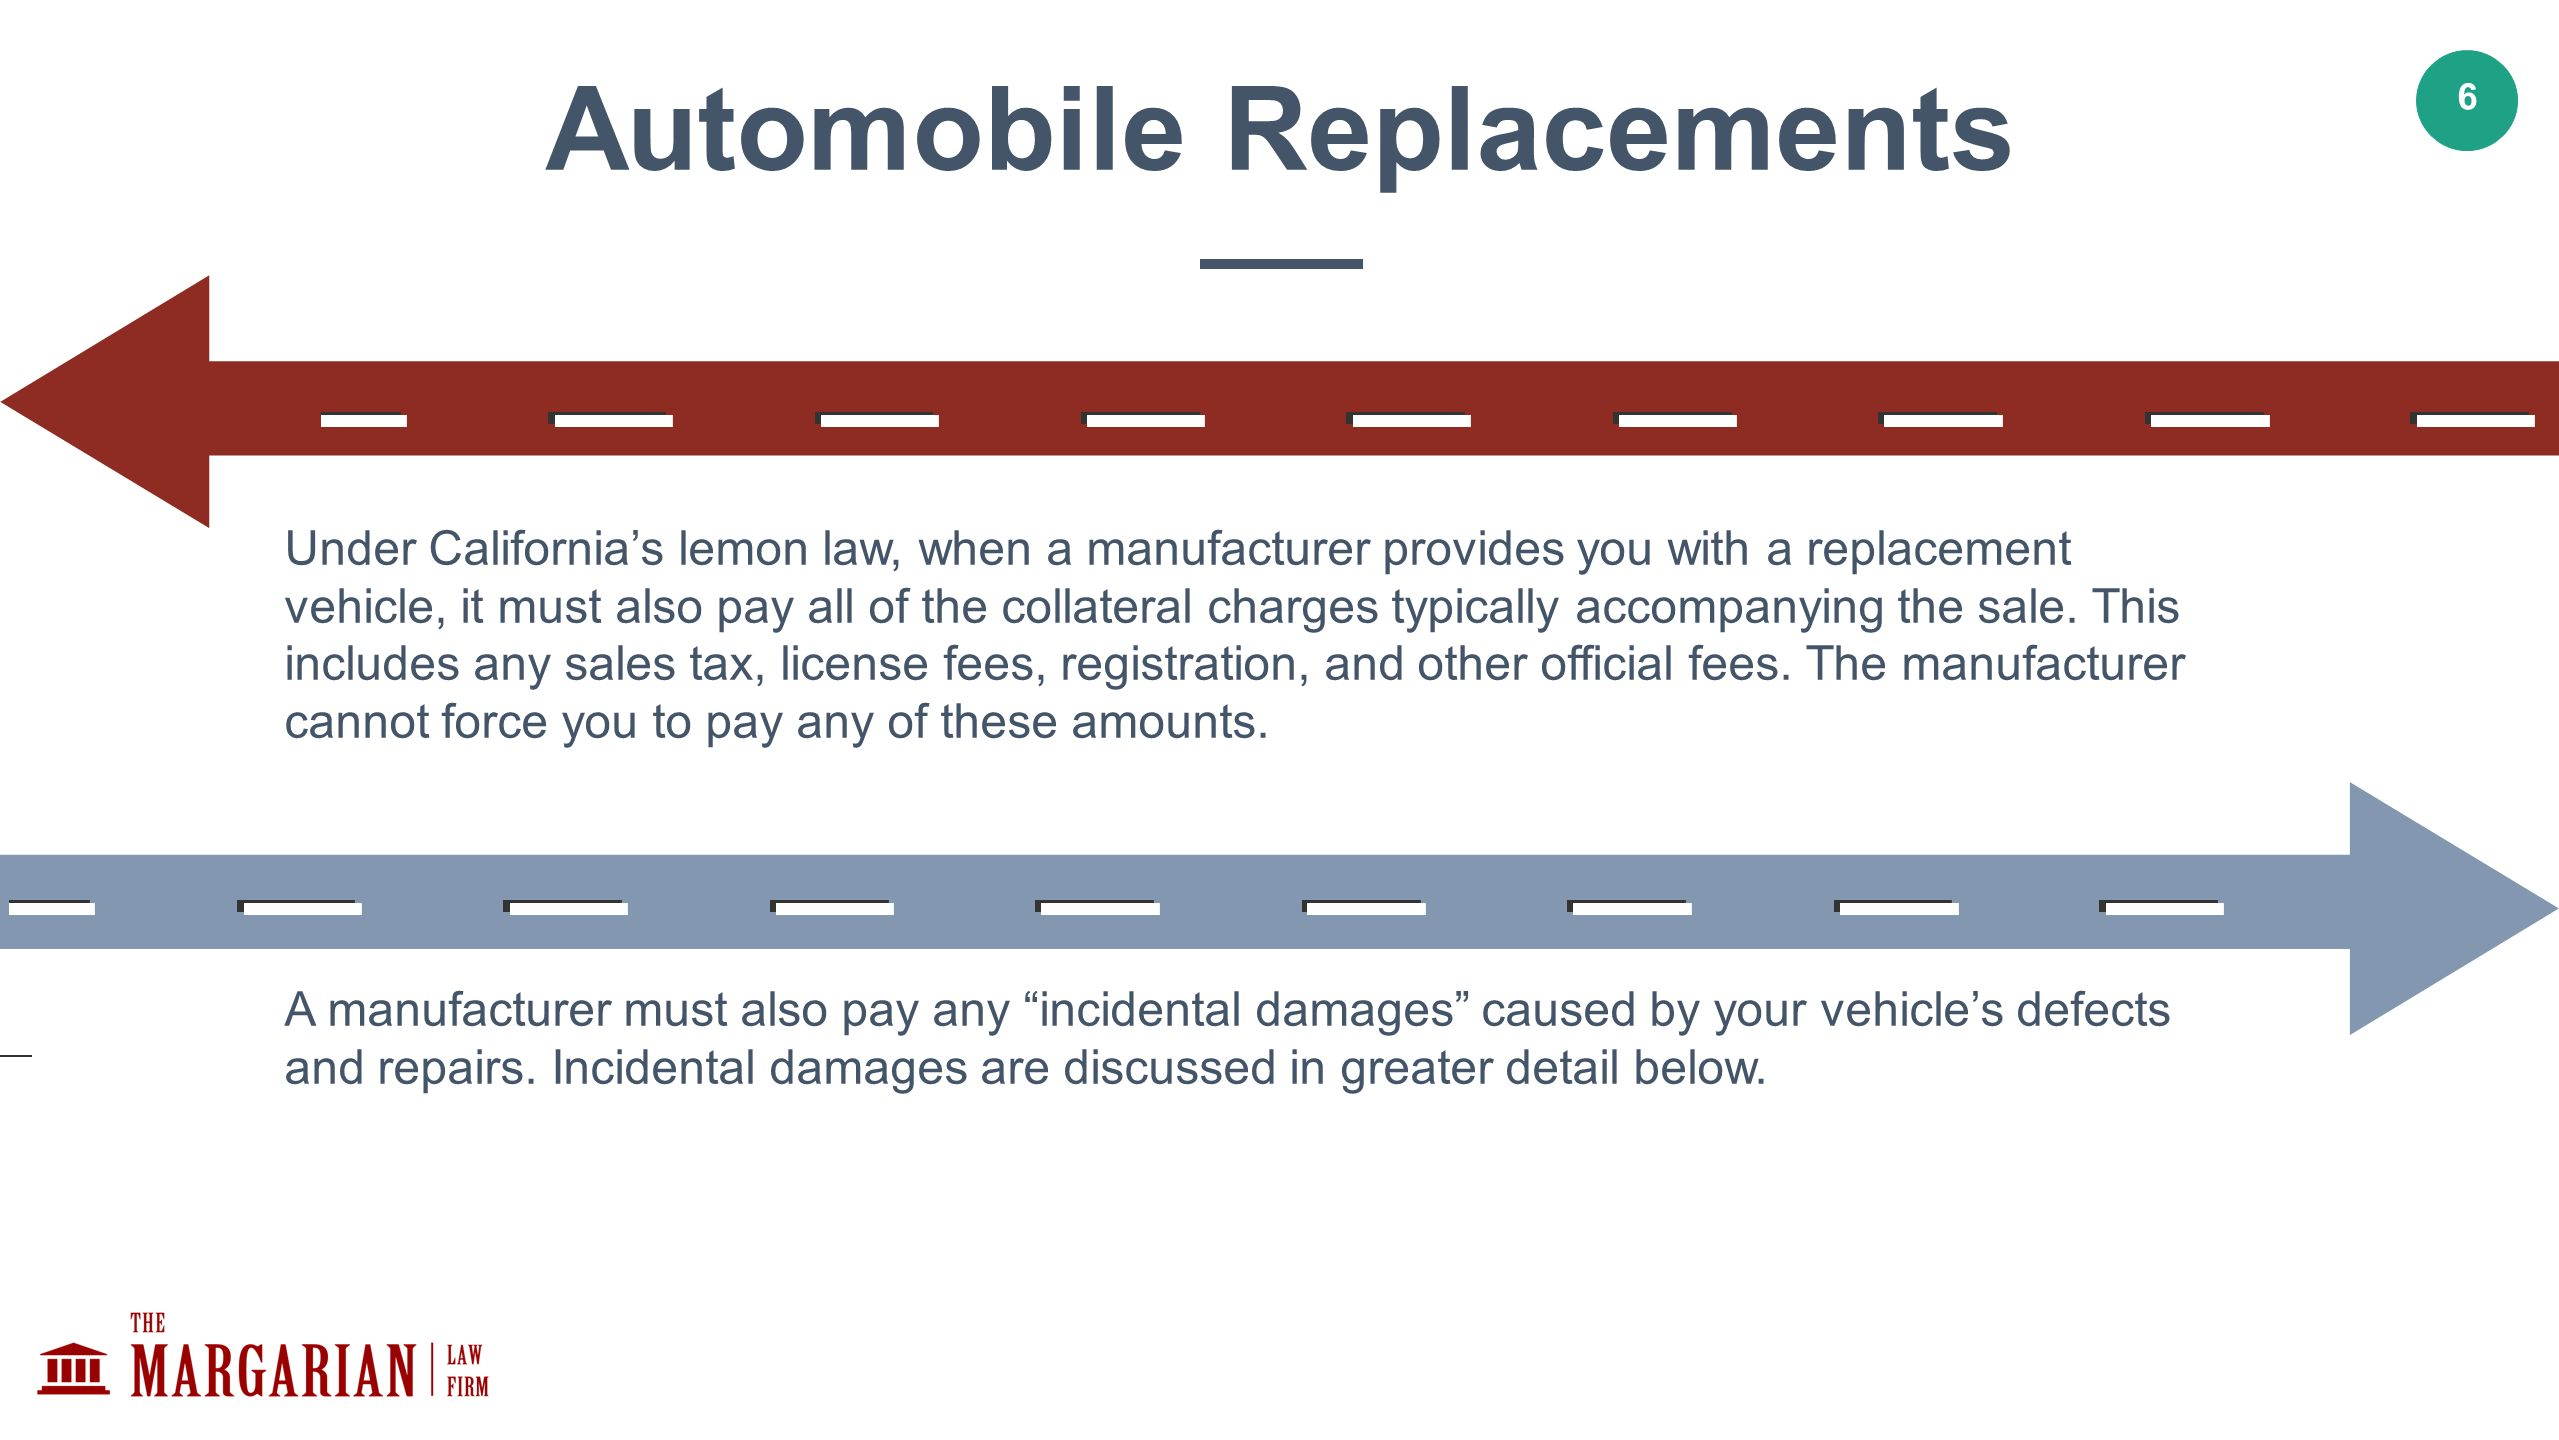 1 BUYBACK AND REPAIR UNDER LEMON LAW finition 2 Table of content